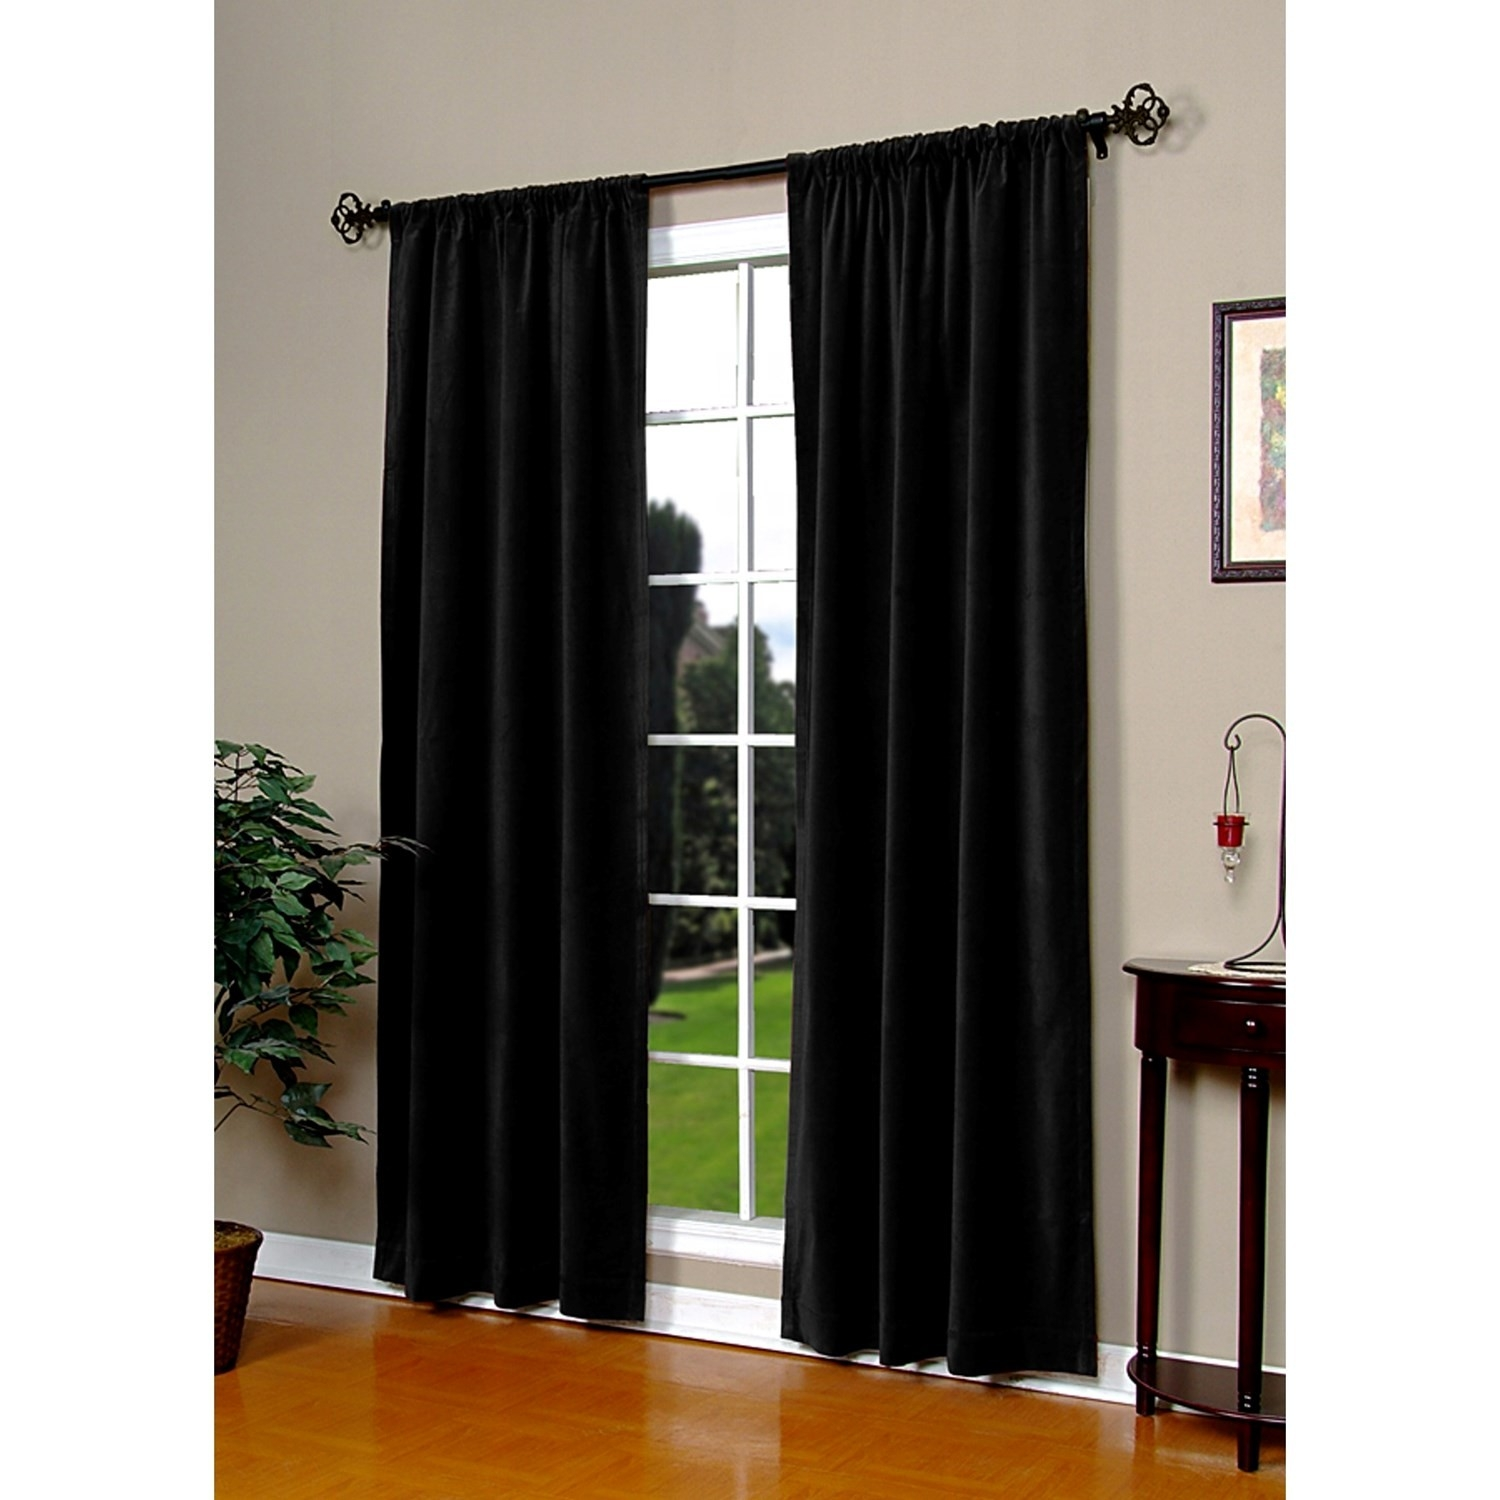 Stunning Velvet Door Curtain Ebay Door Panel Gold Velvet Curtain With Regard To Velvet Door Curtain (Image 11 of 15)